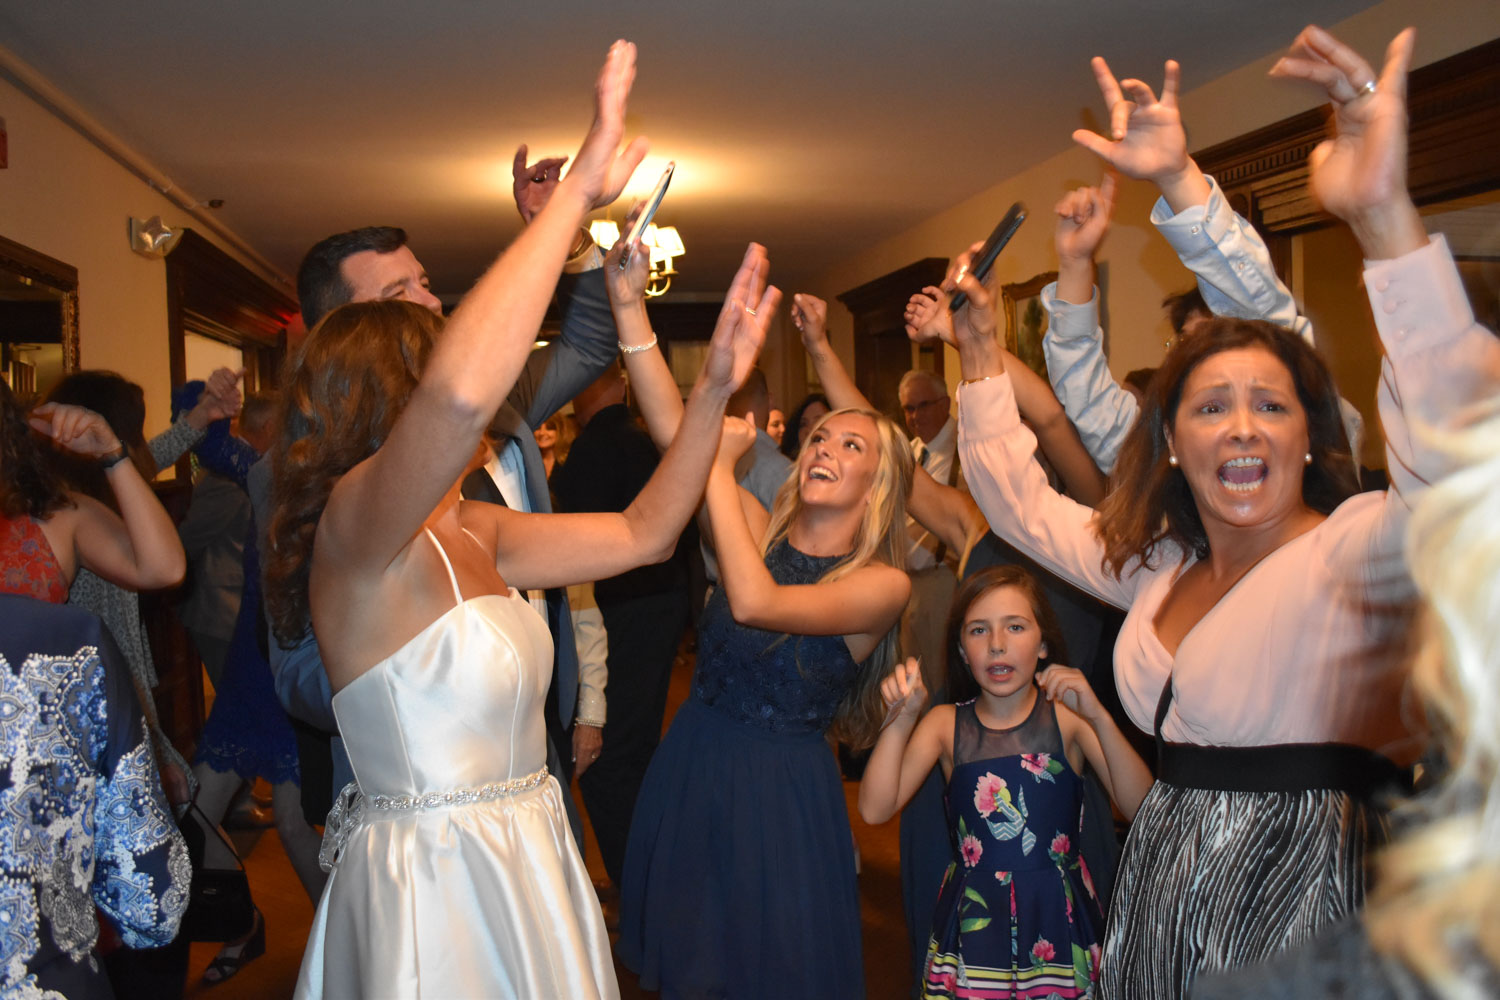 wedding-reception-dancing-guests-with-arms-raised